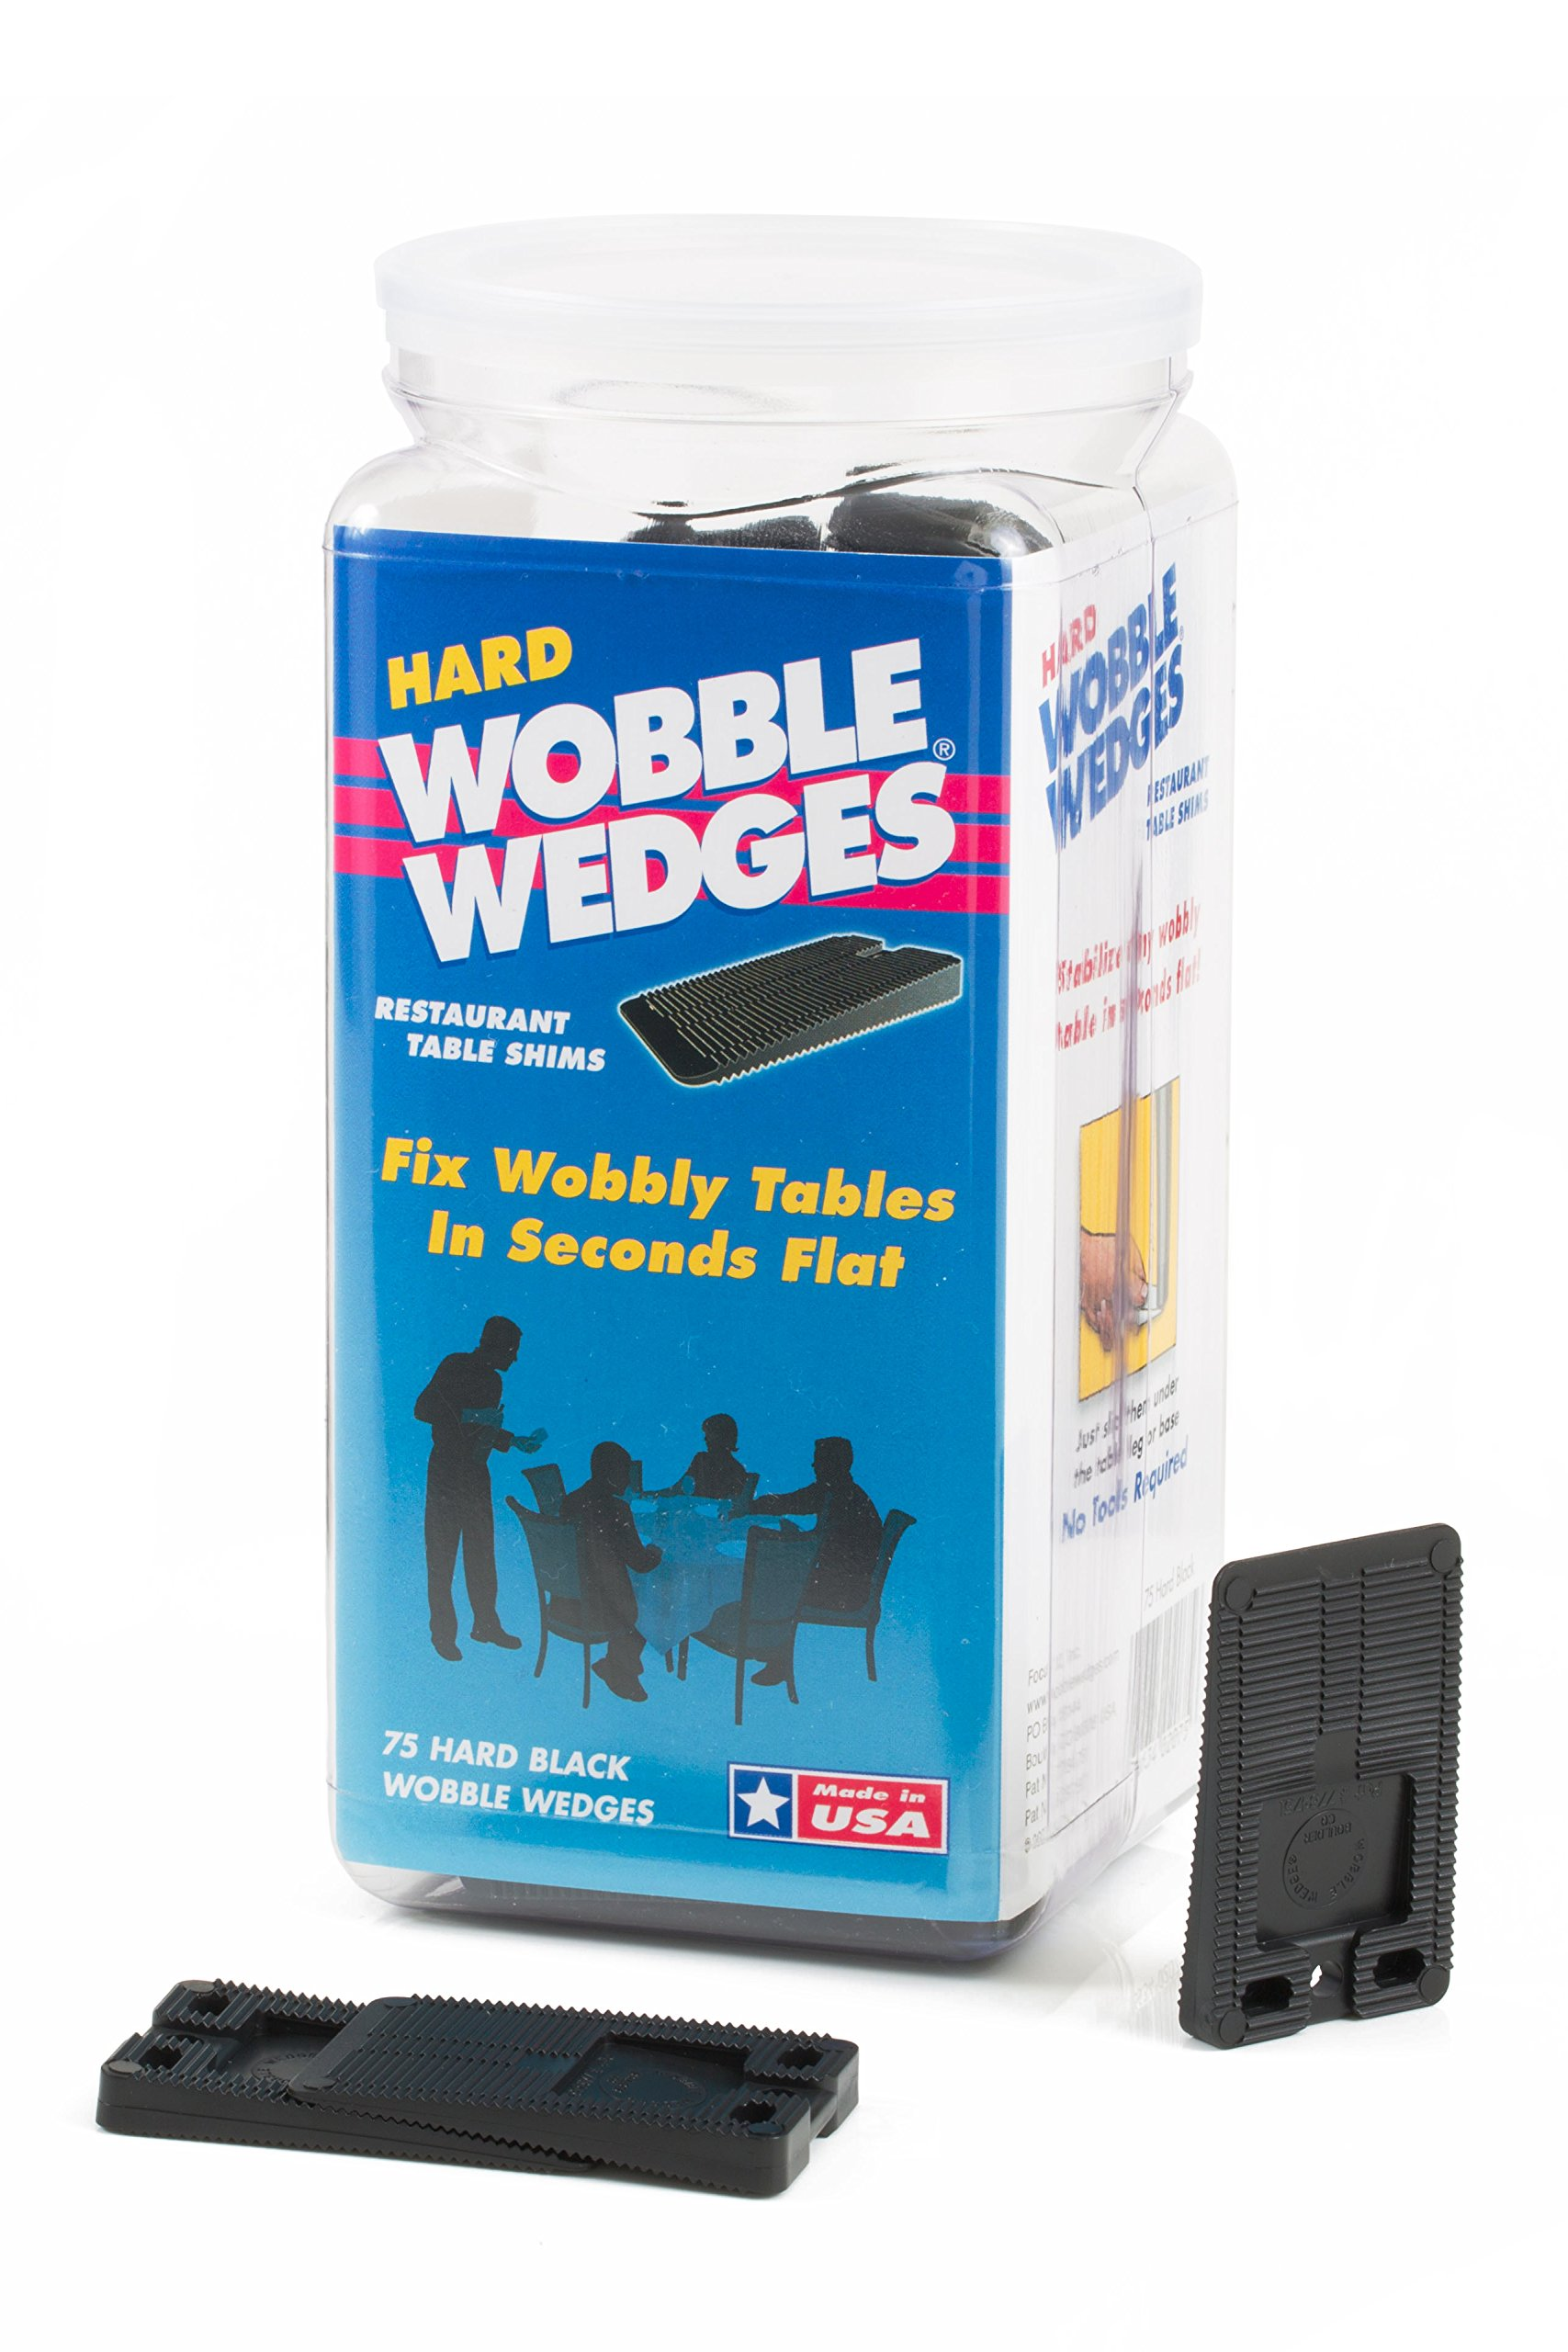 WOBBLE WEDGES Stackable Interlocking Multi-Purpose Leveling Shims - Hard Black Plastic - 75 Pack - Level Furniture, Restaurant Tables, Appliances, Plumbing Fixtures, Tables, Fountains, and More